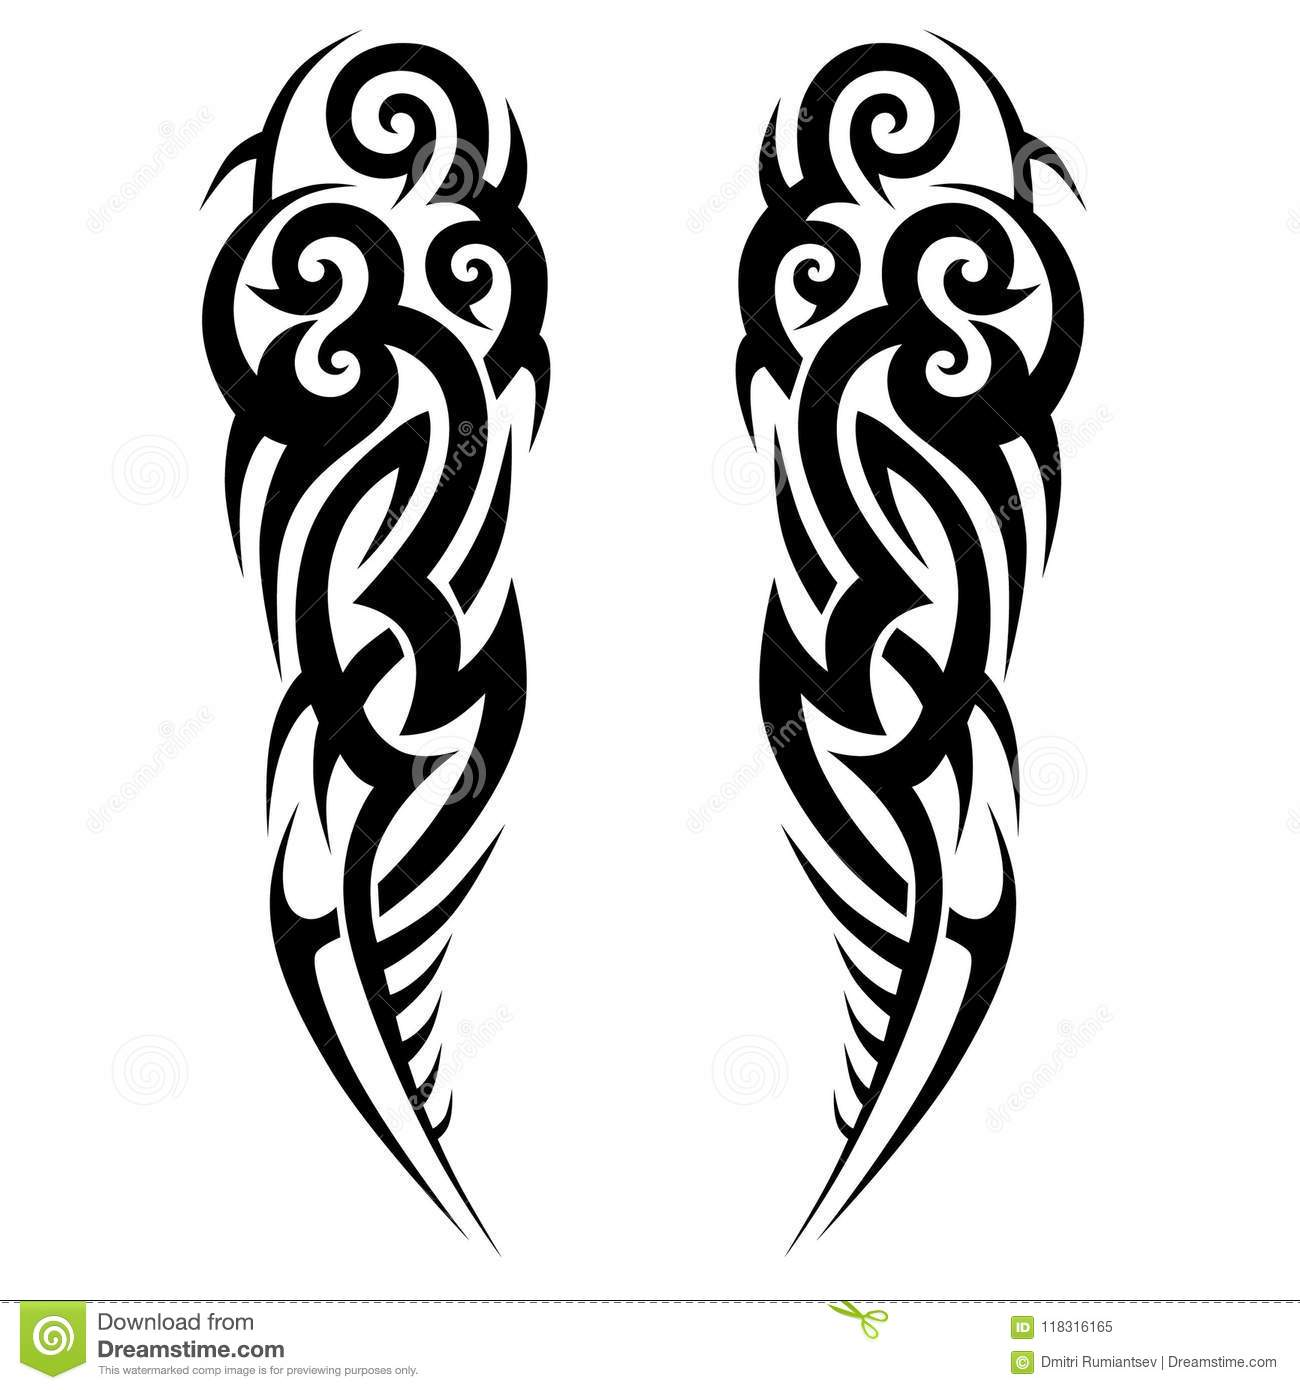 8bab6e4cd938d Tattoo tribal vector design sketch. Sleeve art abstract pattern arm. Simple  icon on white background. Designer isolated abstract element for arm, leg,  ...